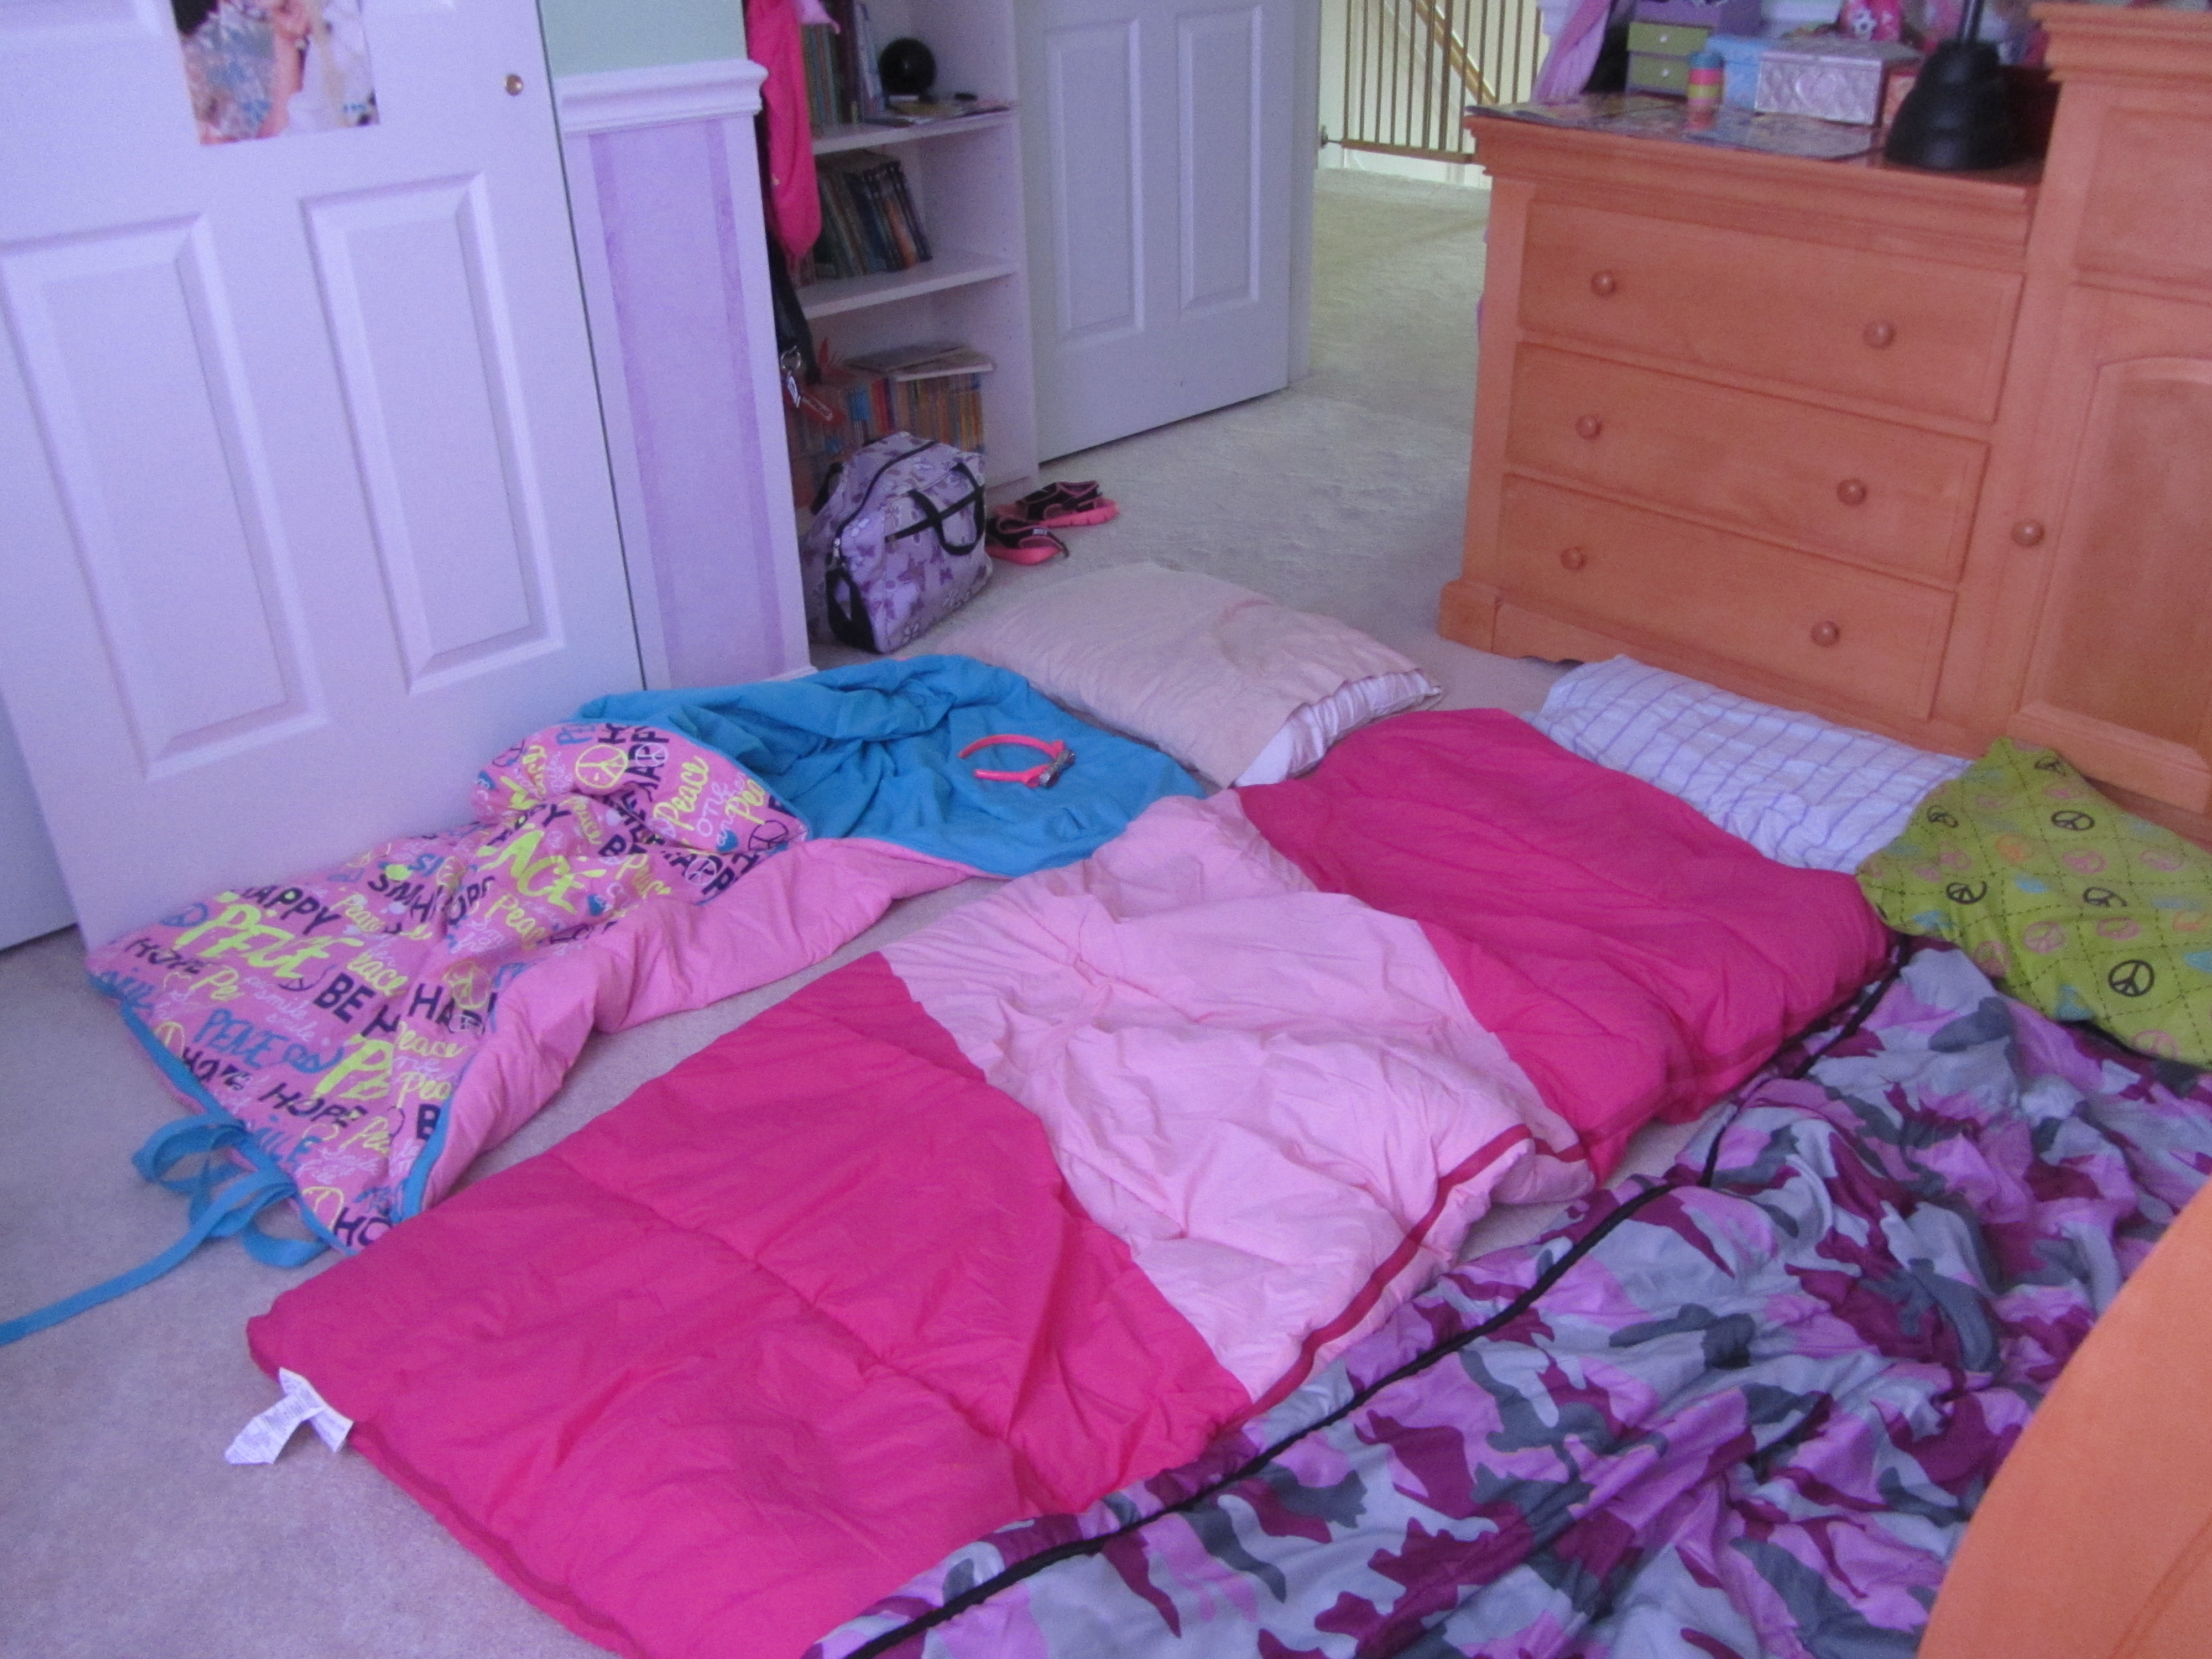 Sleeping Bags That Were Never Used Since They All Squeezed In Megans Bed Like Kittens